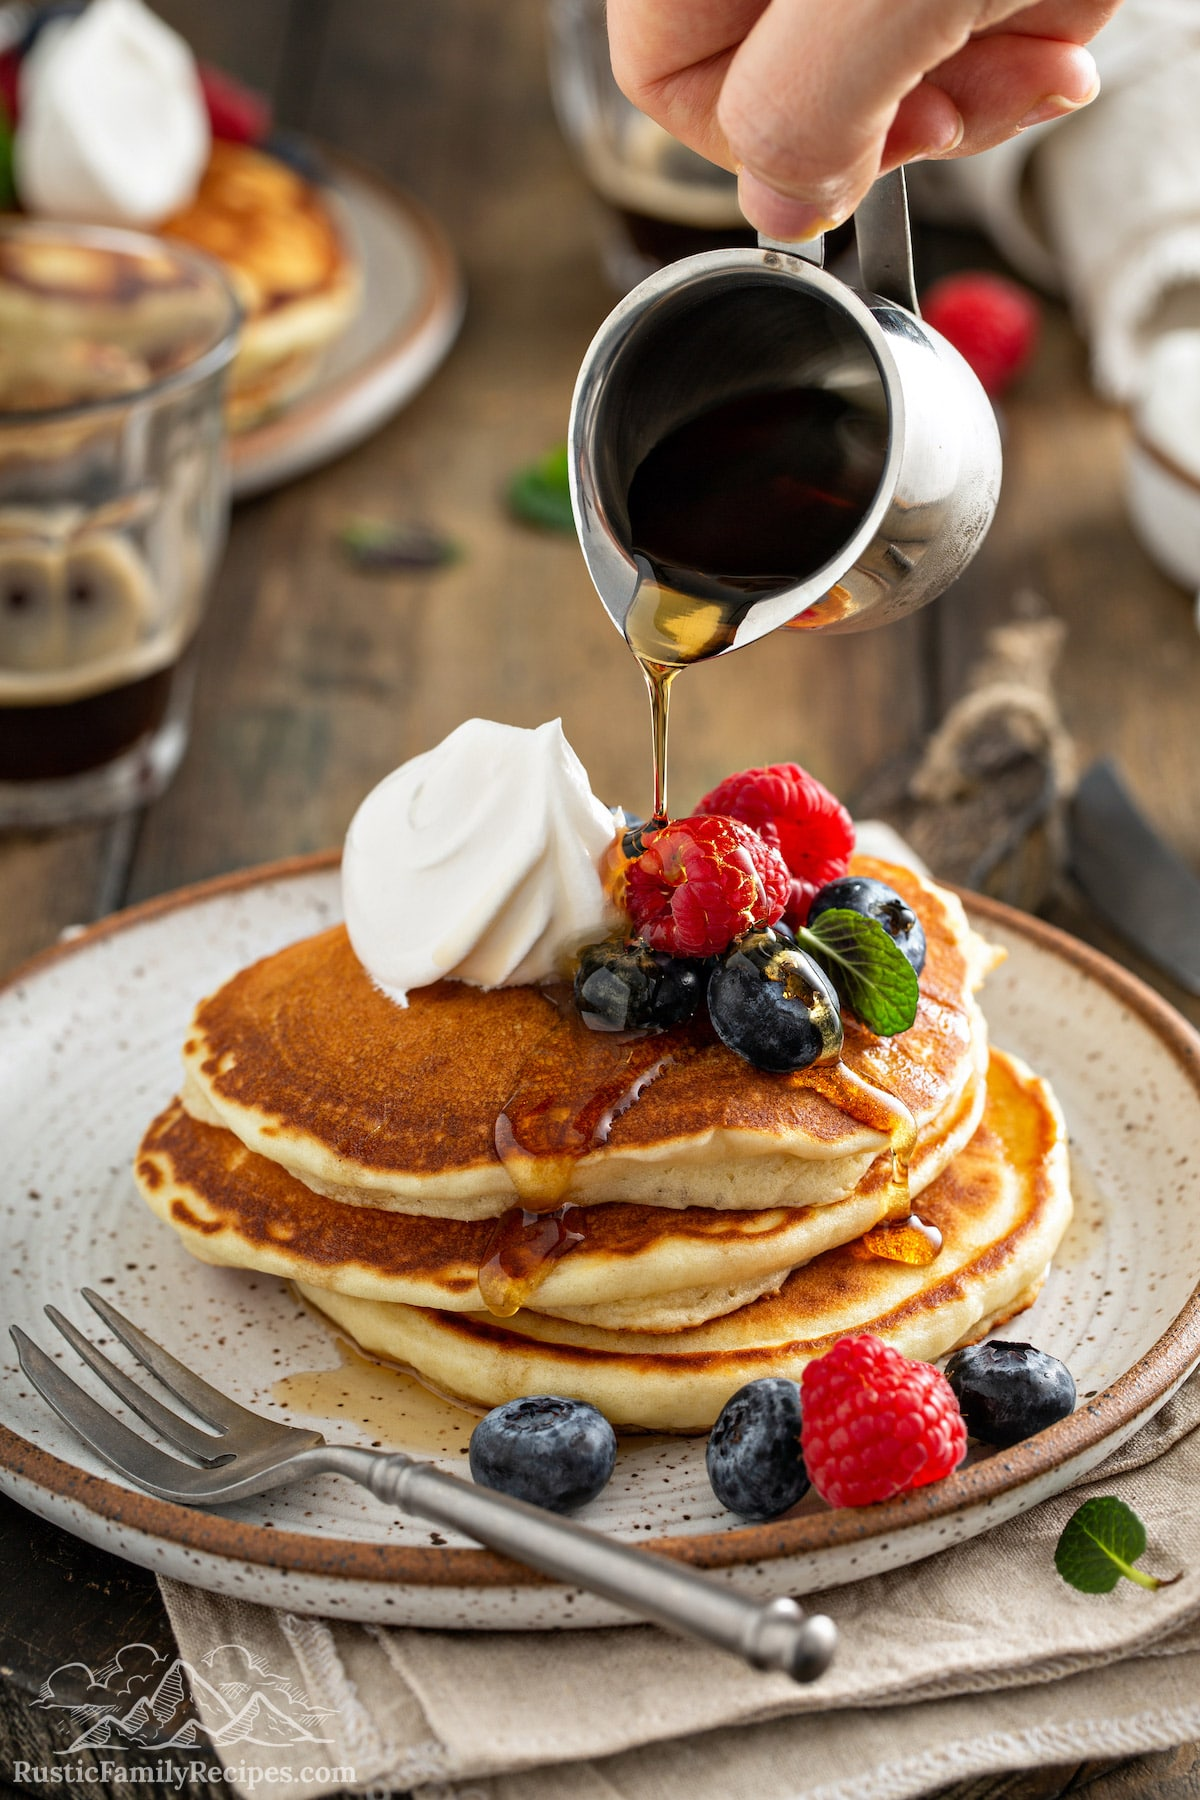 Maple syrup being poured over a stack of fluffy pancakes